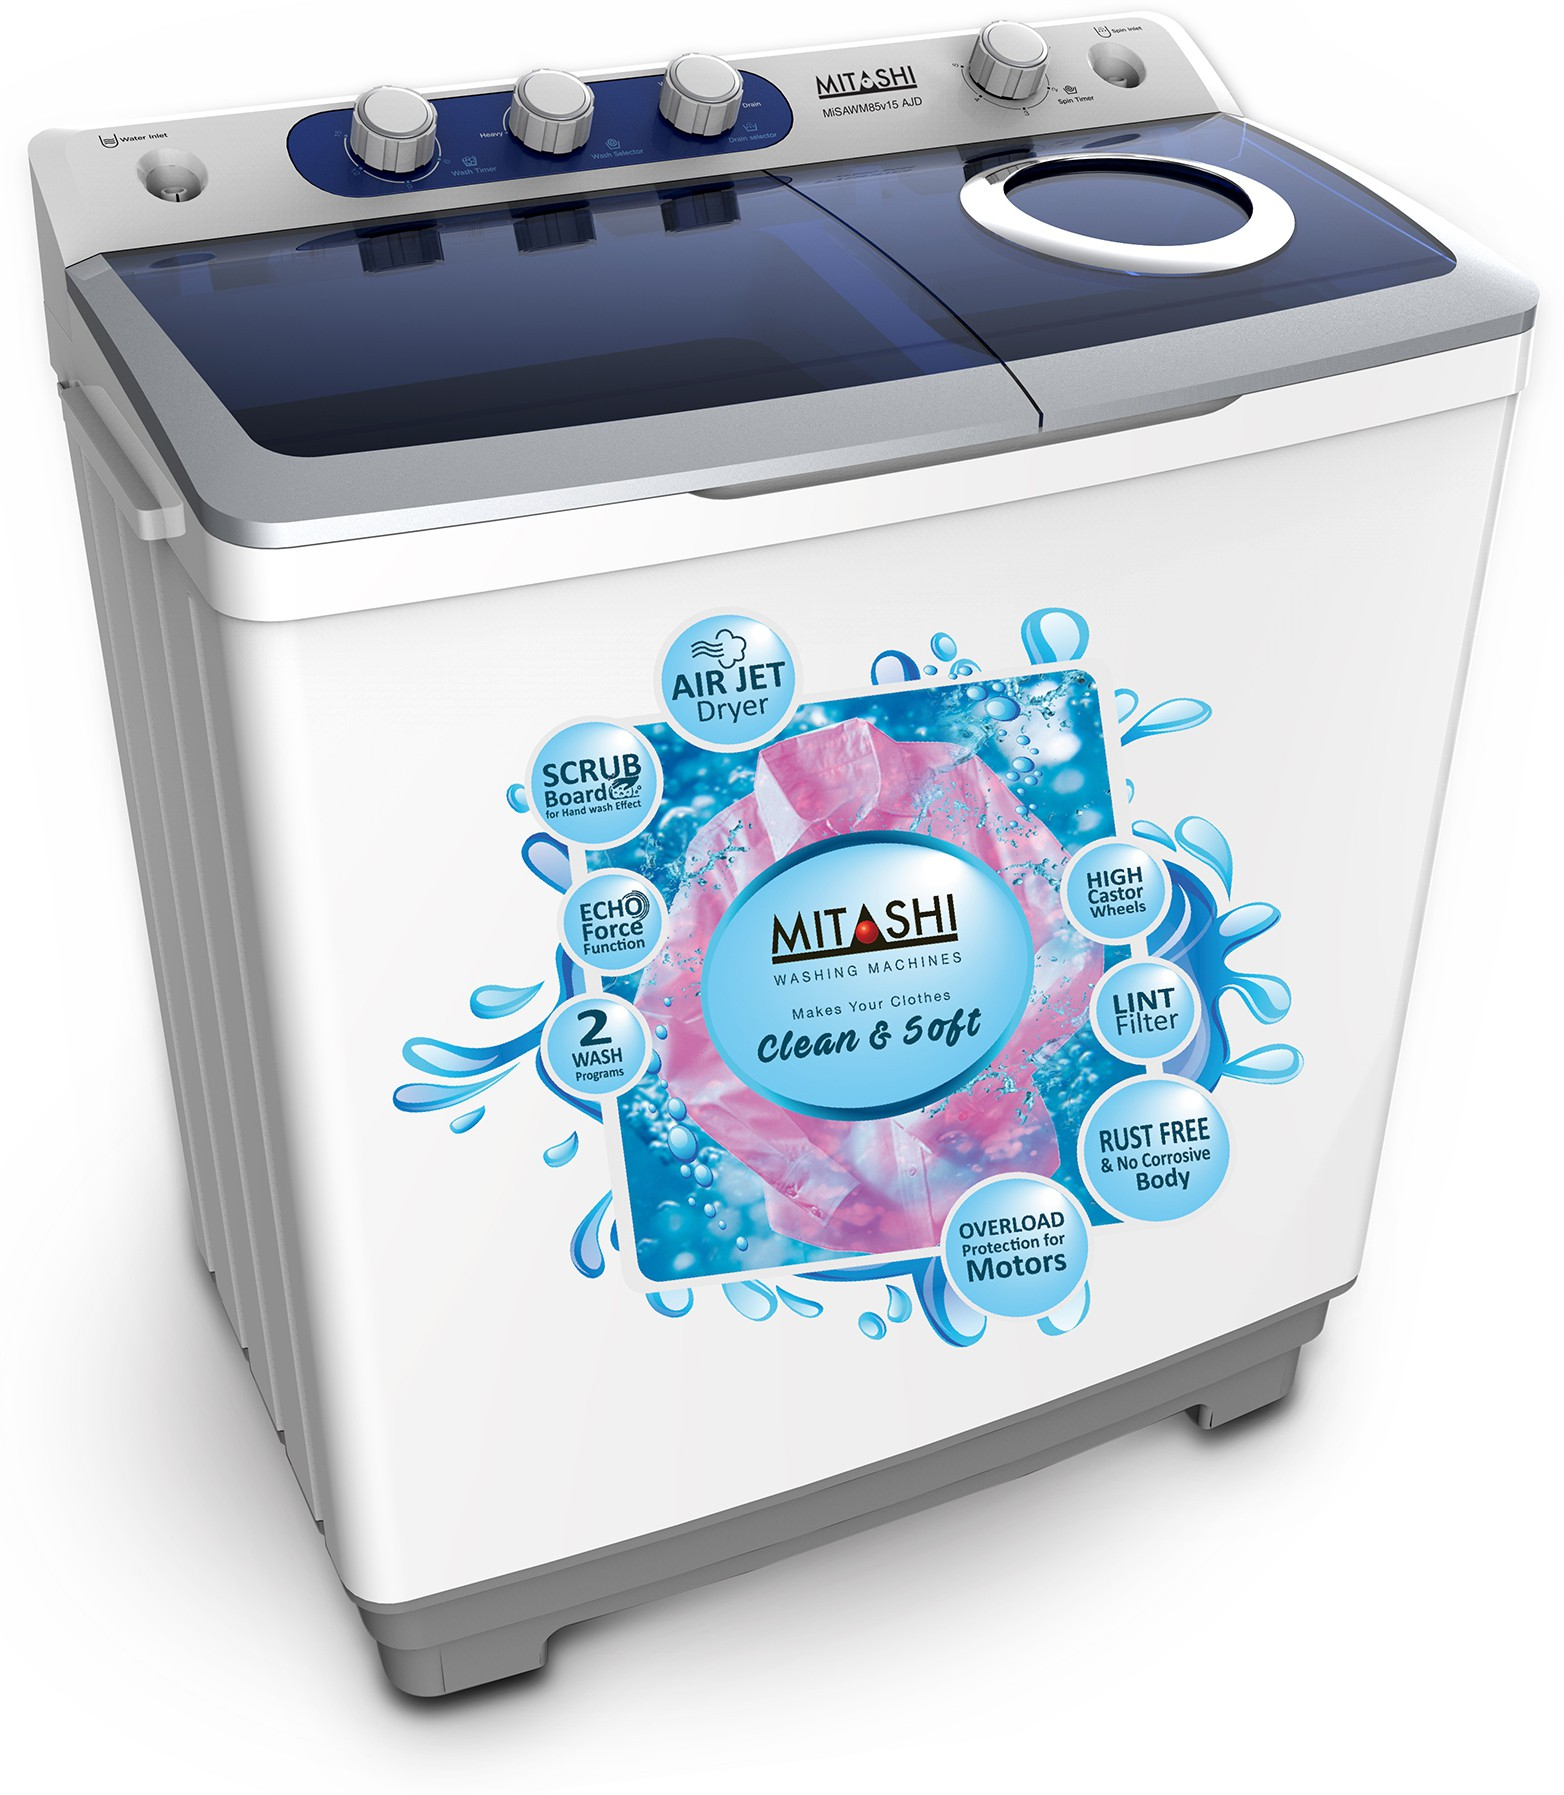 Deals - Bangalore - From ₹9,299 <br> Mitashi Washing Machines<br> Category - home_kitchen<br> Business - Flipkart.com